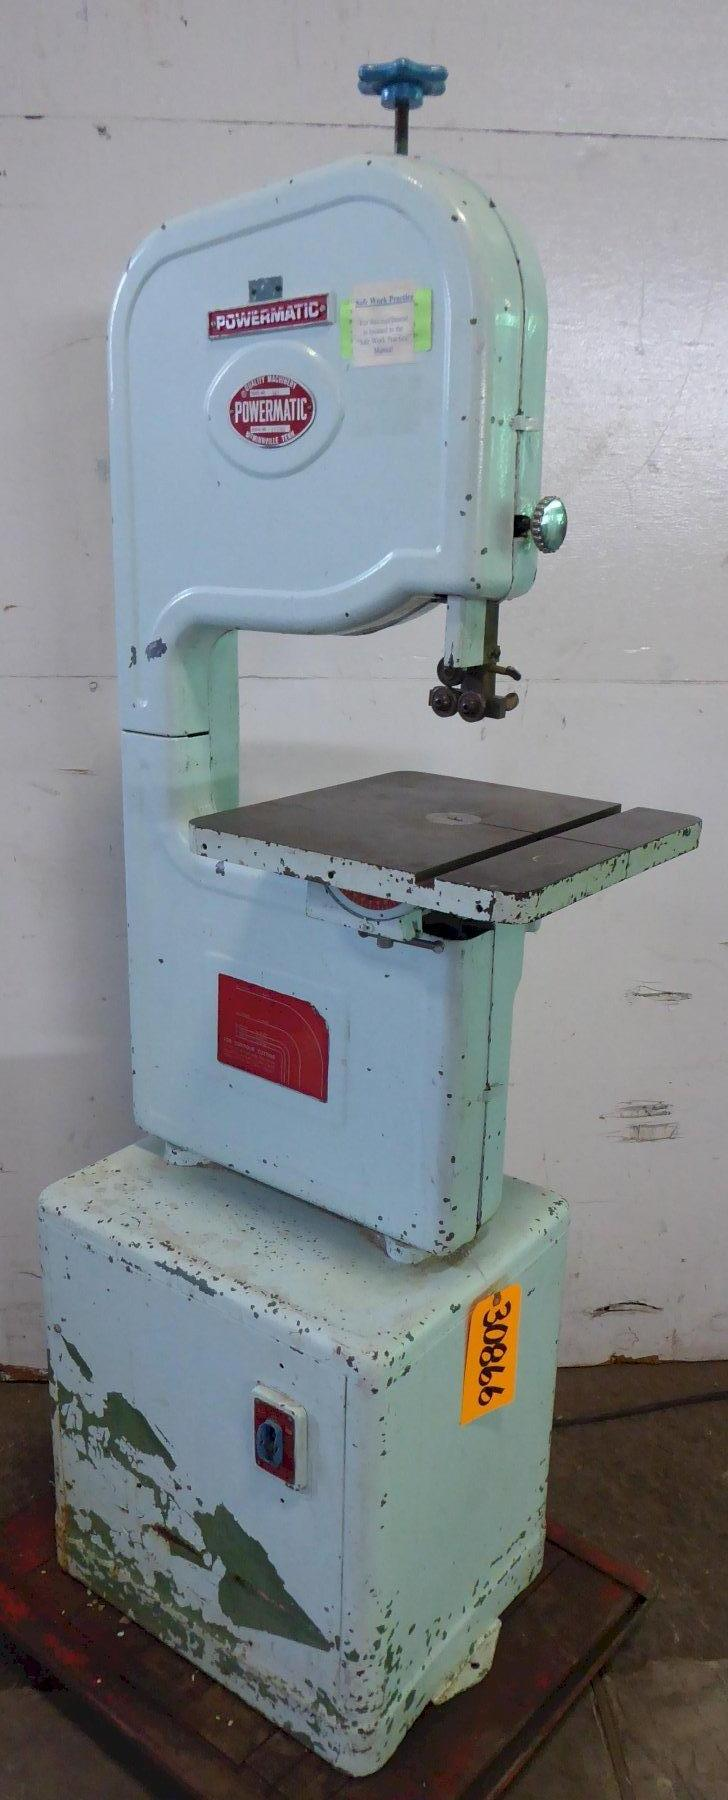 14″ Powermatic Vertical Band Saw No. 141